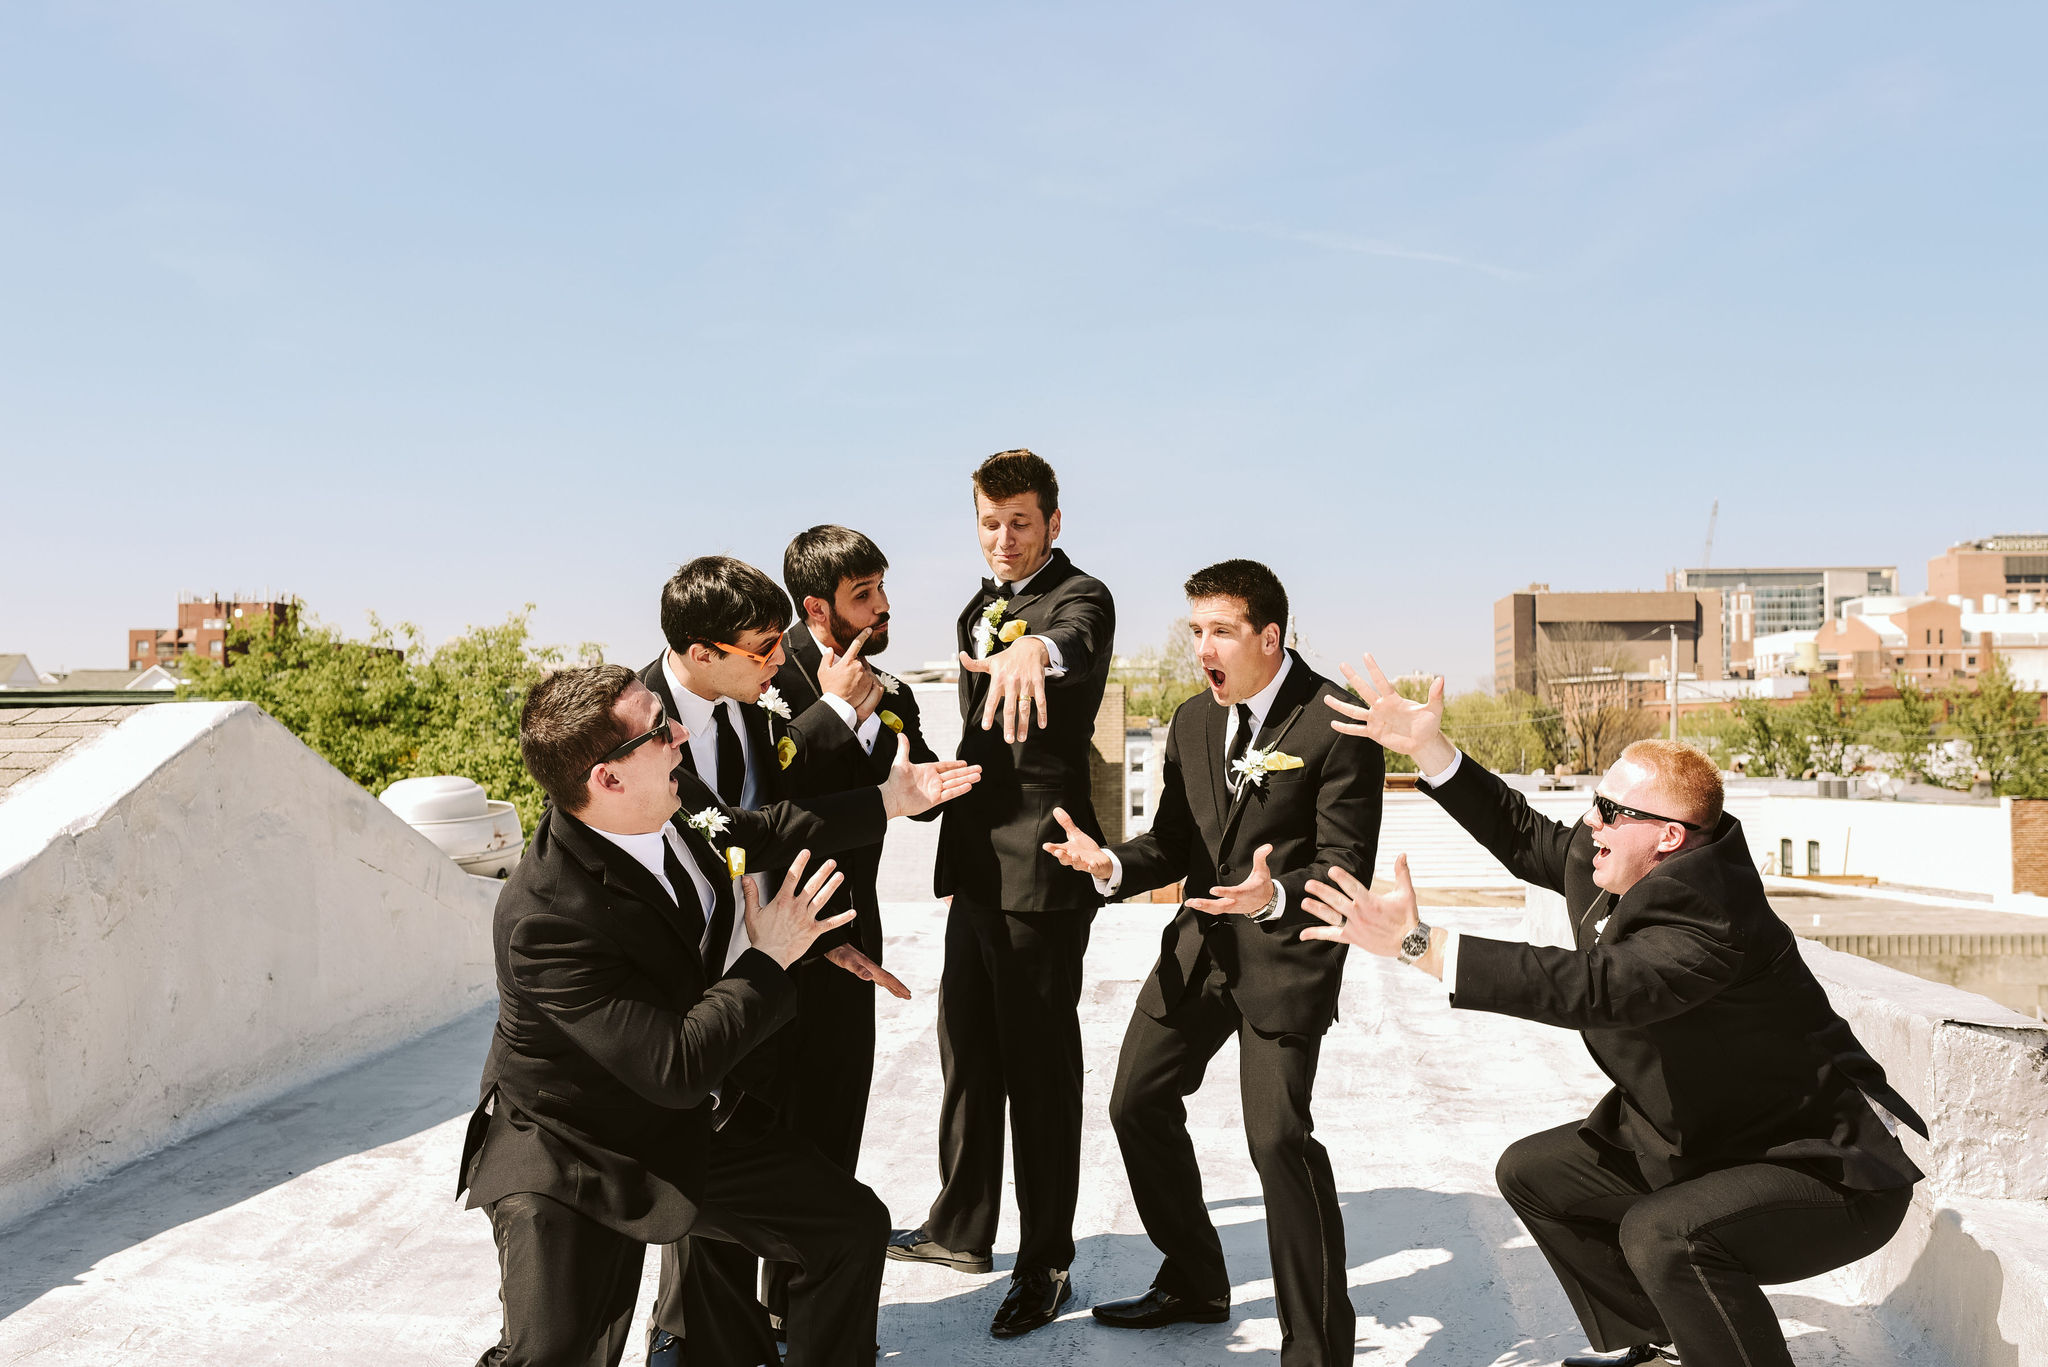 Baltimore, Church Wedding, Maryland Wedding Photographer, Vintage, Classic, 50s Style, Groom Showing Off Ring, Groom with Groomsmen, Fun Photo, Portrait